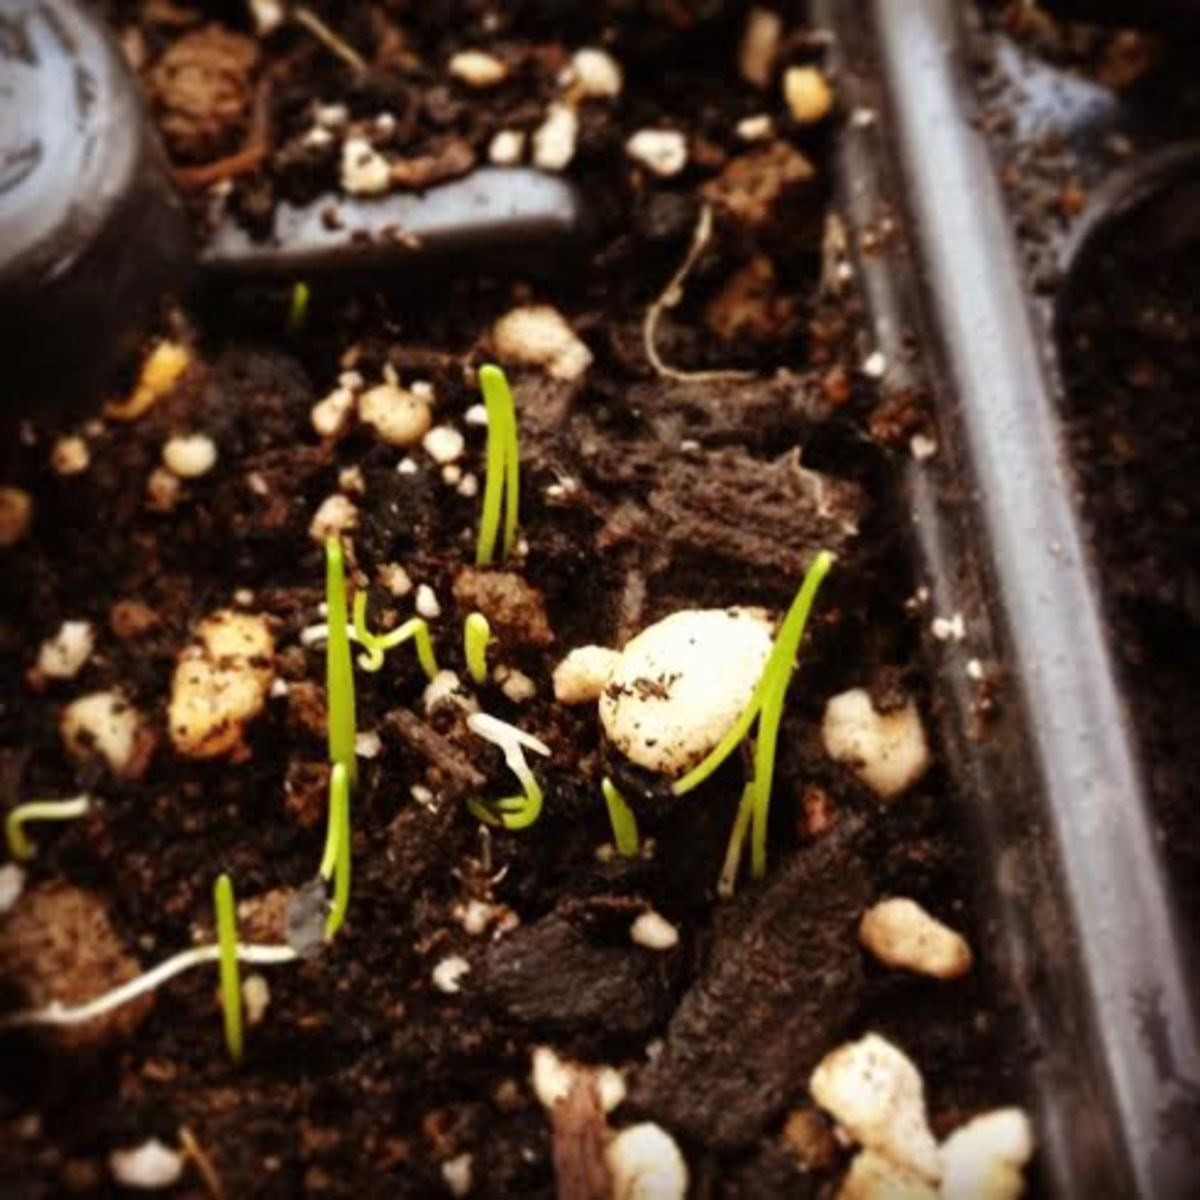 Brand new little chive plants.